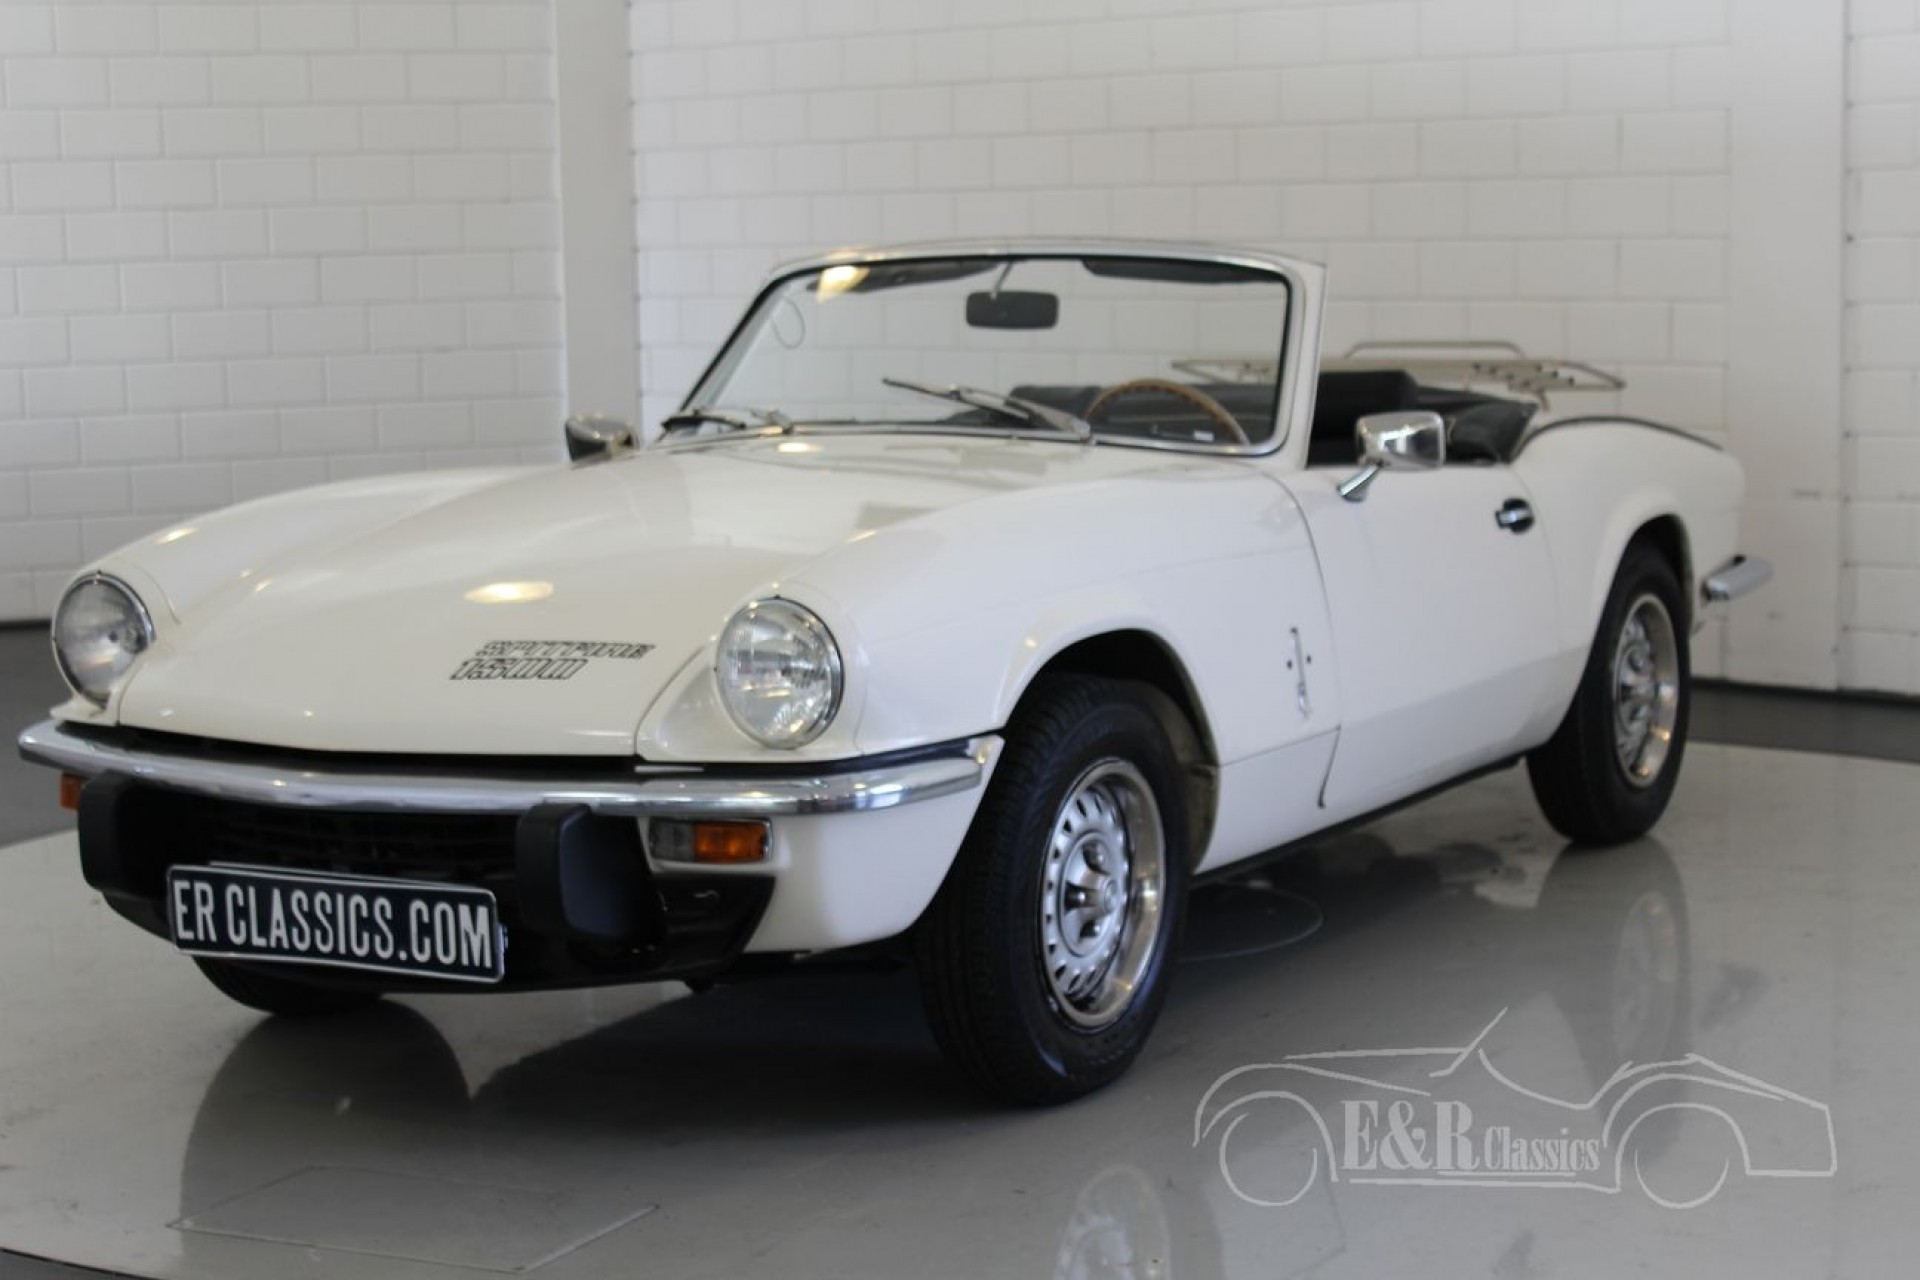 Triumph Spitfire 1500 TC 1977 for sale at ERclassics